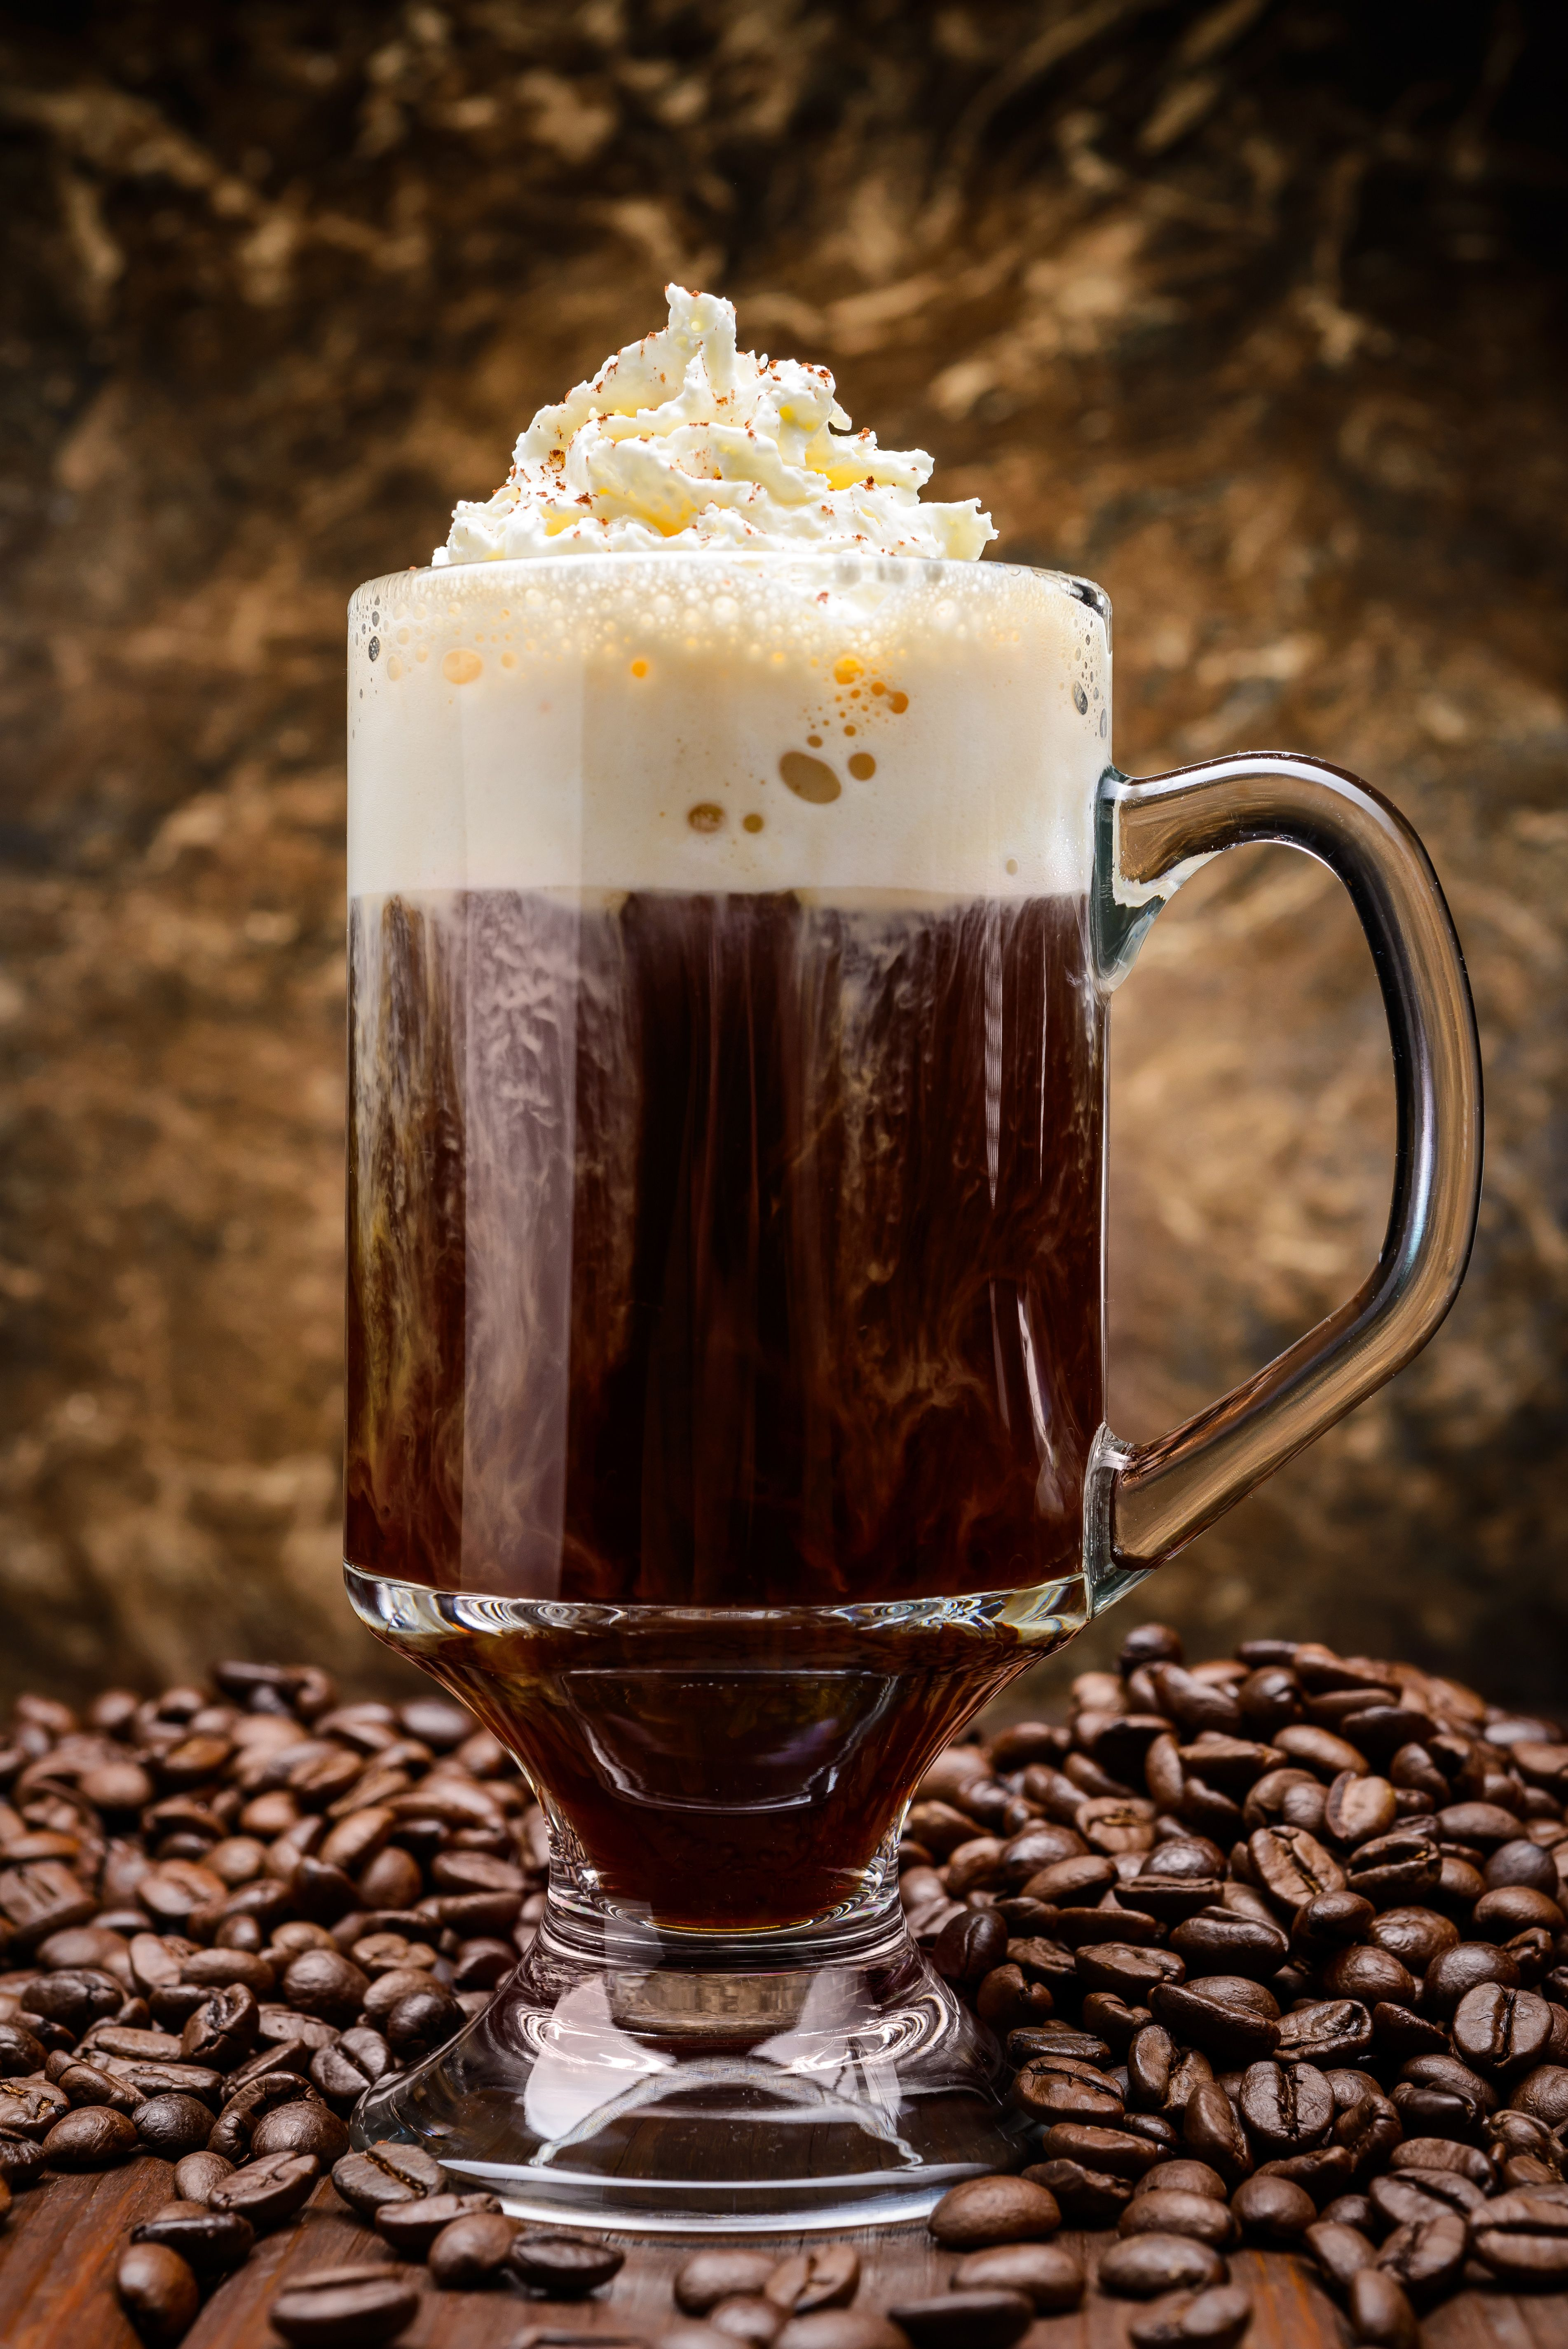 Hot chocolate with whipped cream, chocolate syrup, and